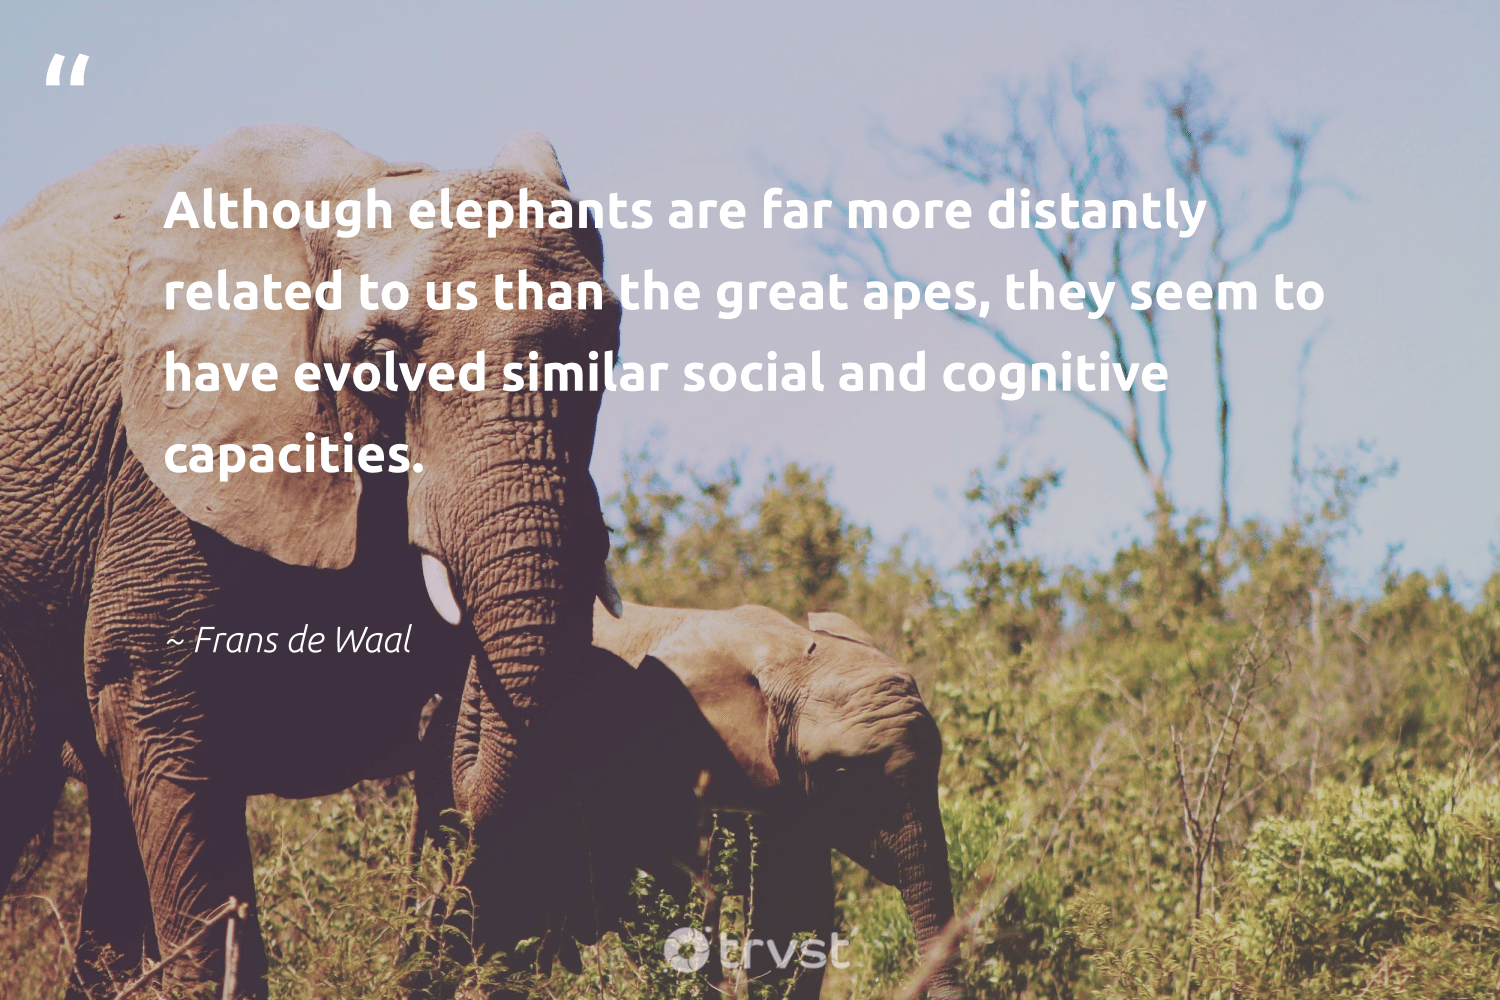 """""""Although elephants are far more distantly related to us than the great apes, they seem to have evolved similar social and cognitive capacities.""""  - Frans de Waal #trvst #quotes #elephants #naturelovers #socialchange #mammals #beinspired #endangered #collectiveaction #endangeredspecies #thinkgreen #elephantlove"""